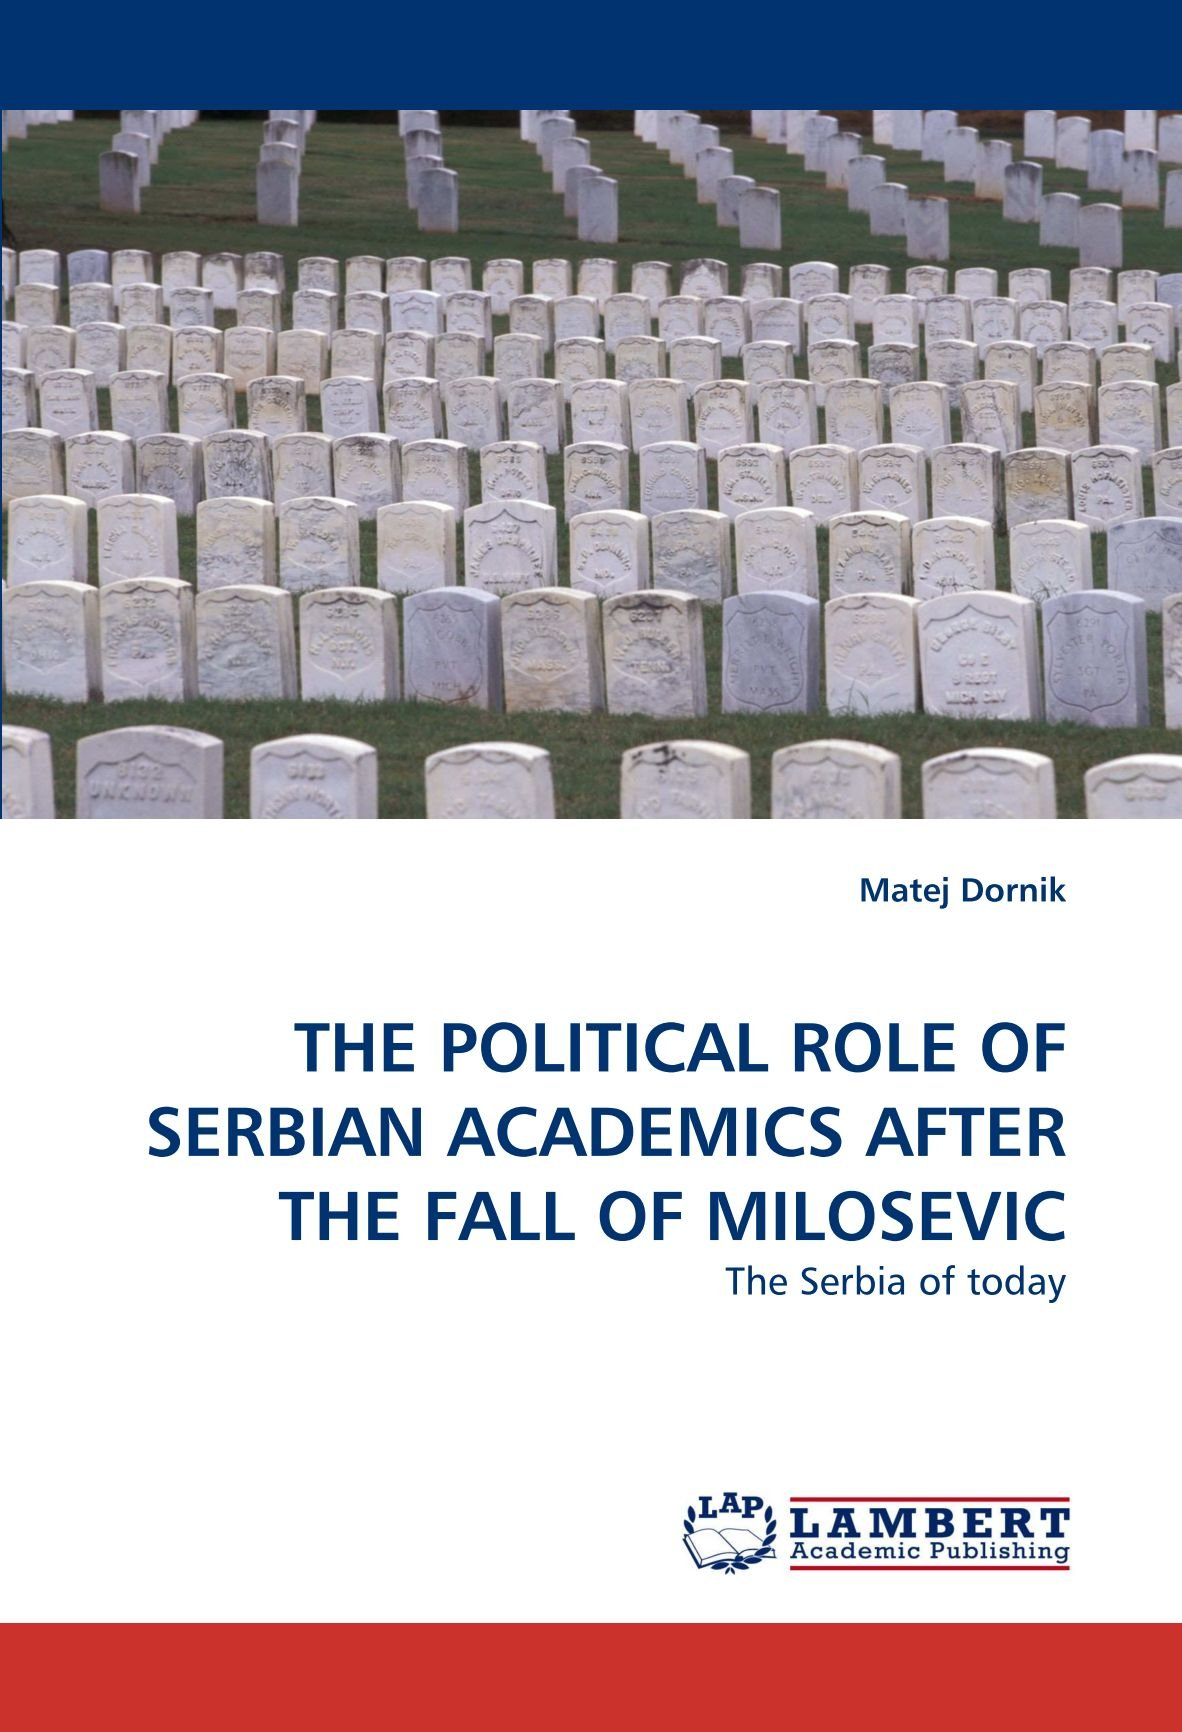 Buy The Political Role of Serbian Academics After the Fall of Milosevic Book Online at Low Prices in India | The Political Role of Serbian Academics After ...